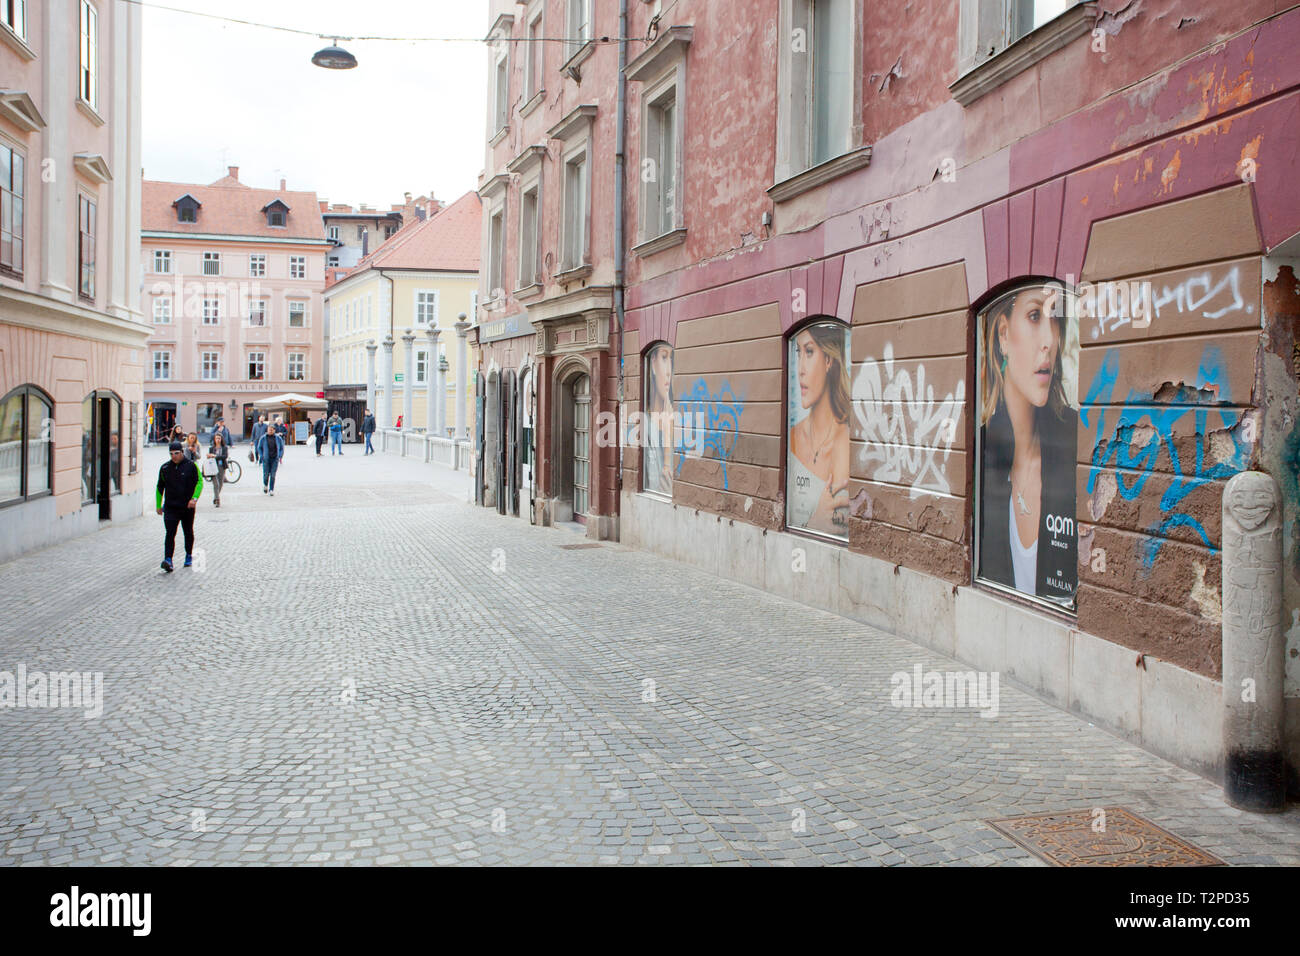 Street posters of women among graffiti - Stock Image